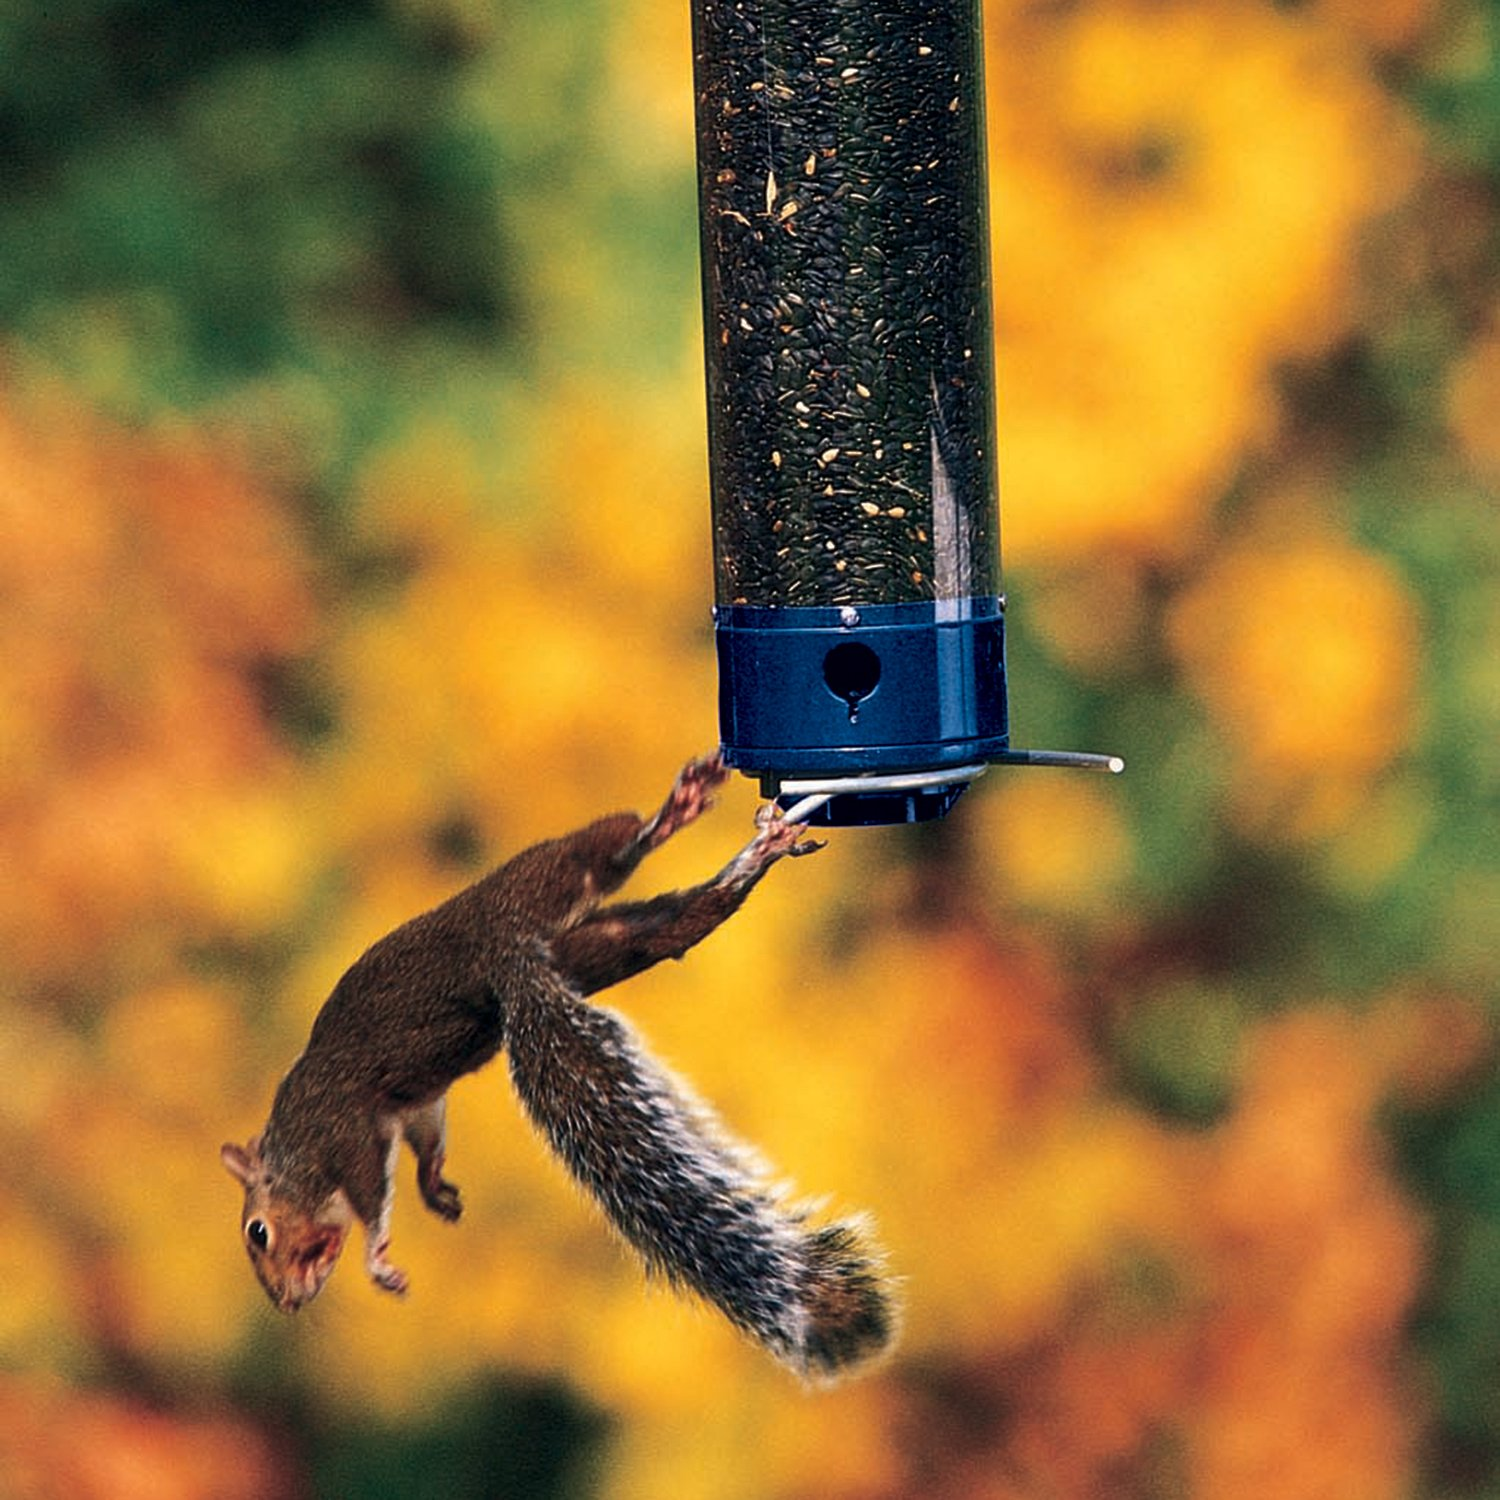 Droll Yankees Yankee Whipper Squirrel-Proof Bird Feeder, 21 Inches, 4 Ports, Blue by Droll Yankees (Image #4)